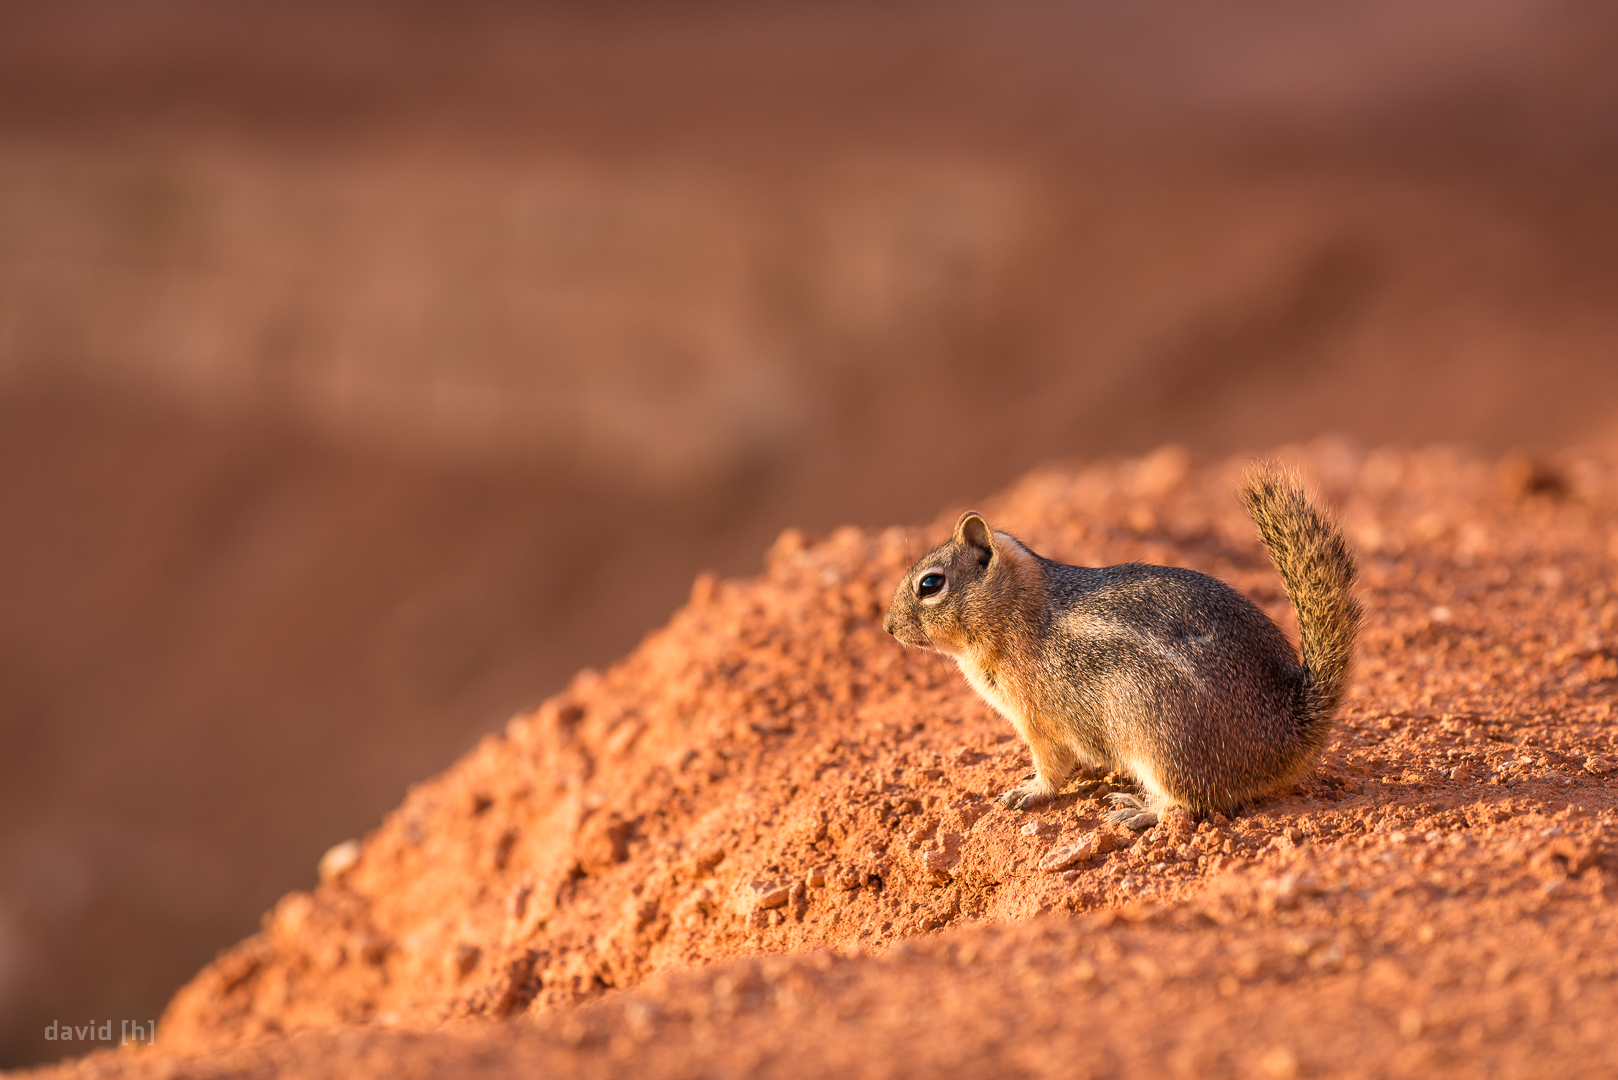 I was not the only one enjoying the sunrise that morning in Bryce Canyon - the local wildlife sure appreciates those moments of silence and beauty as well.